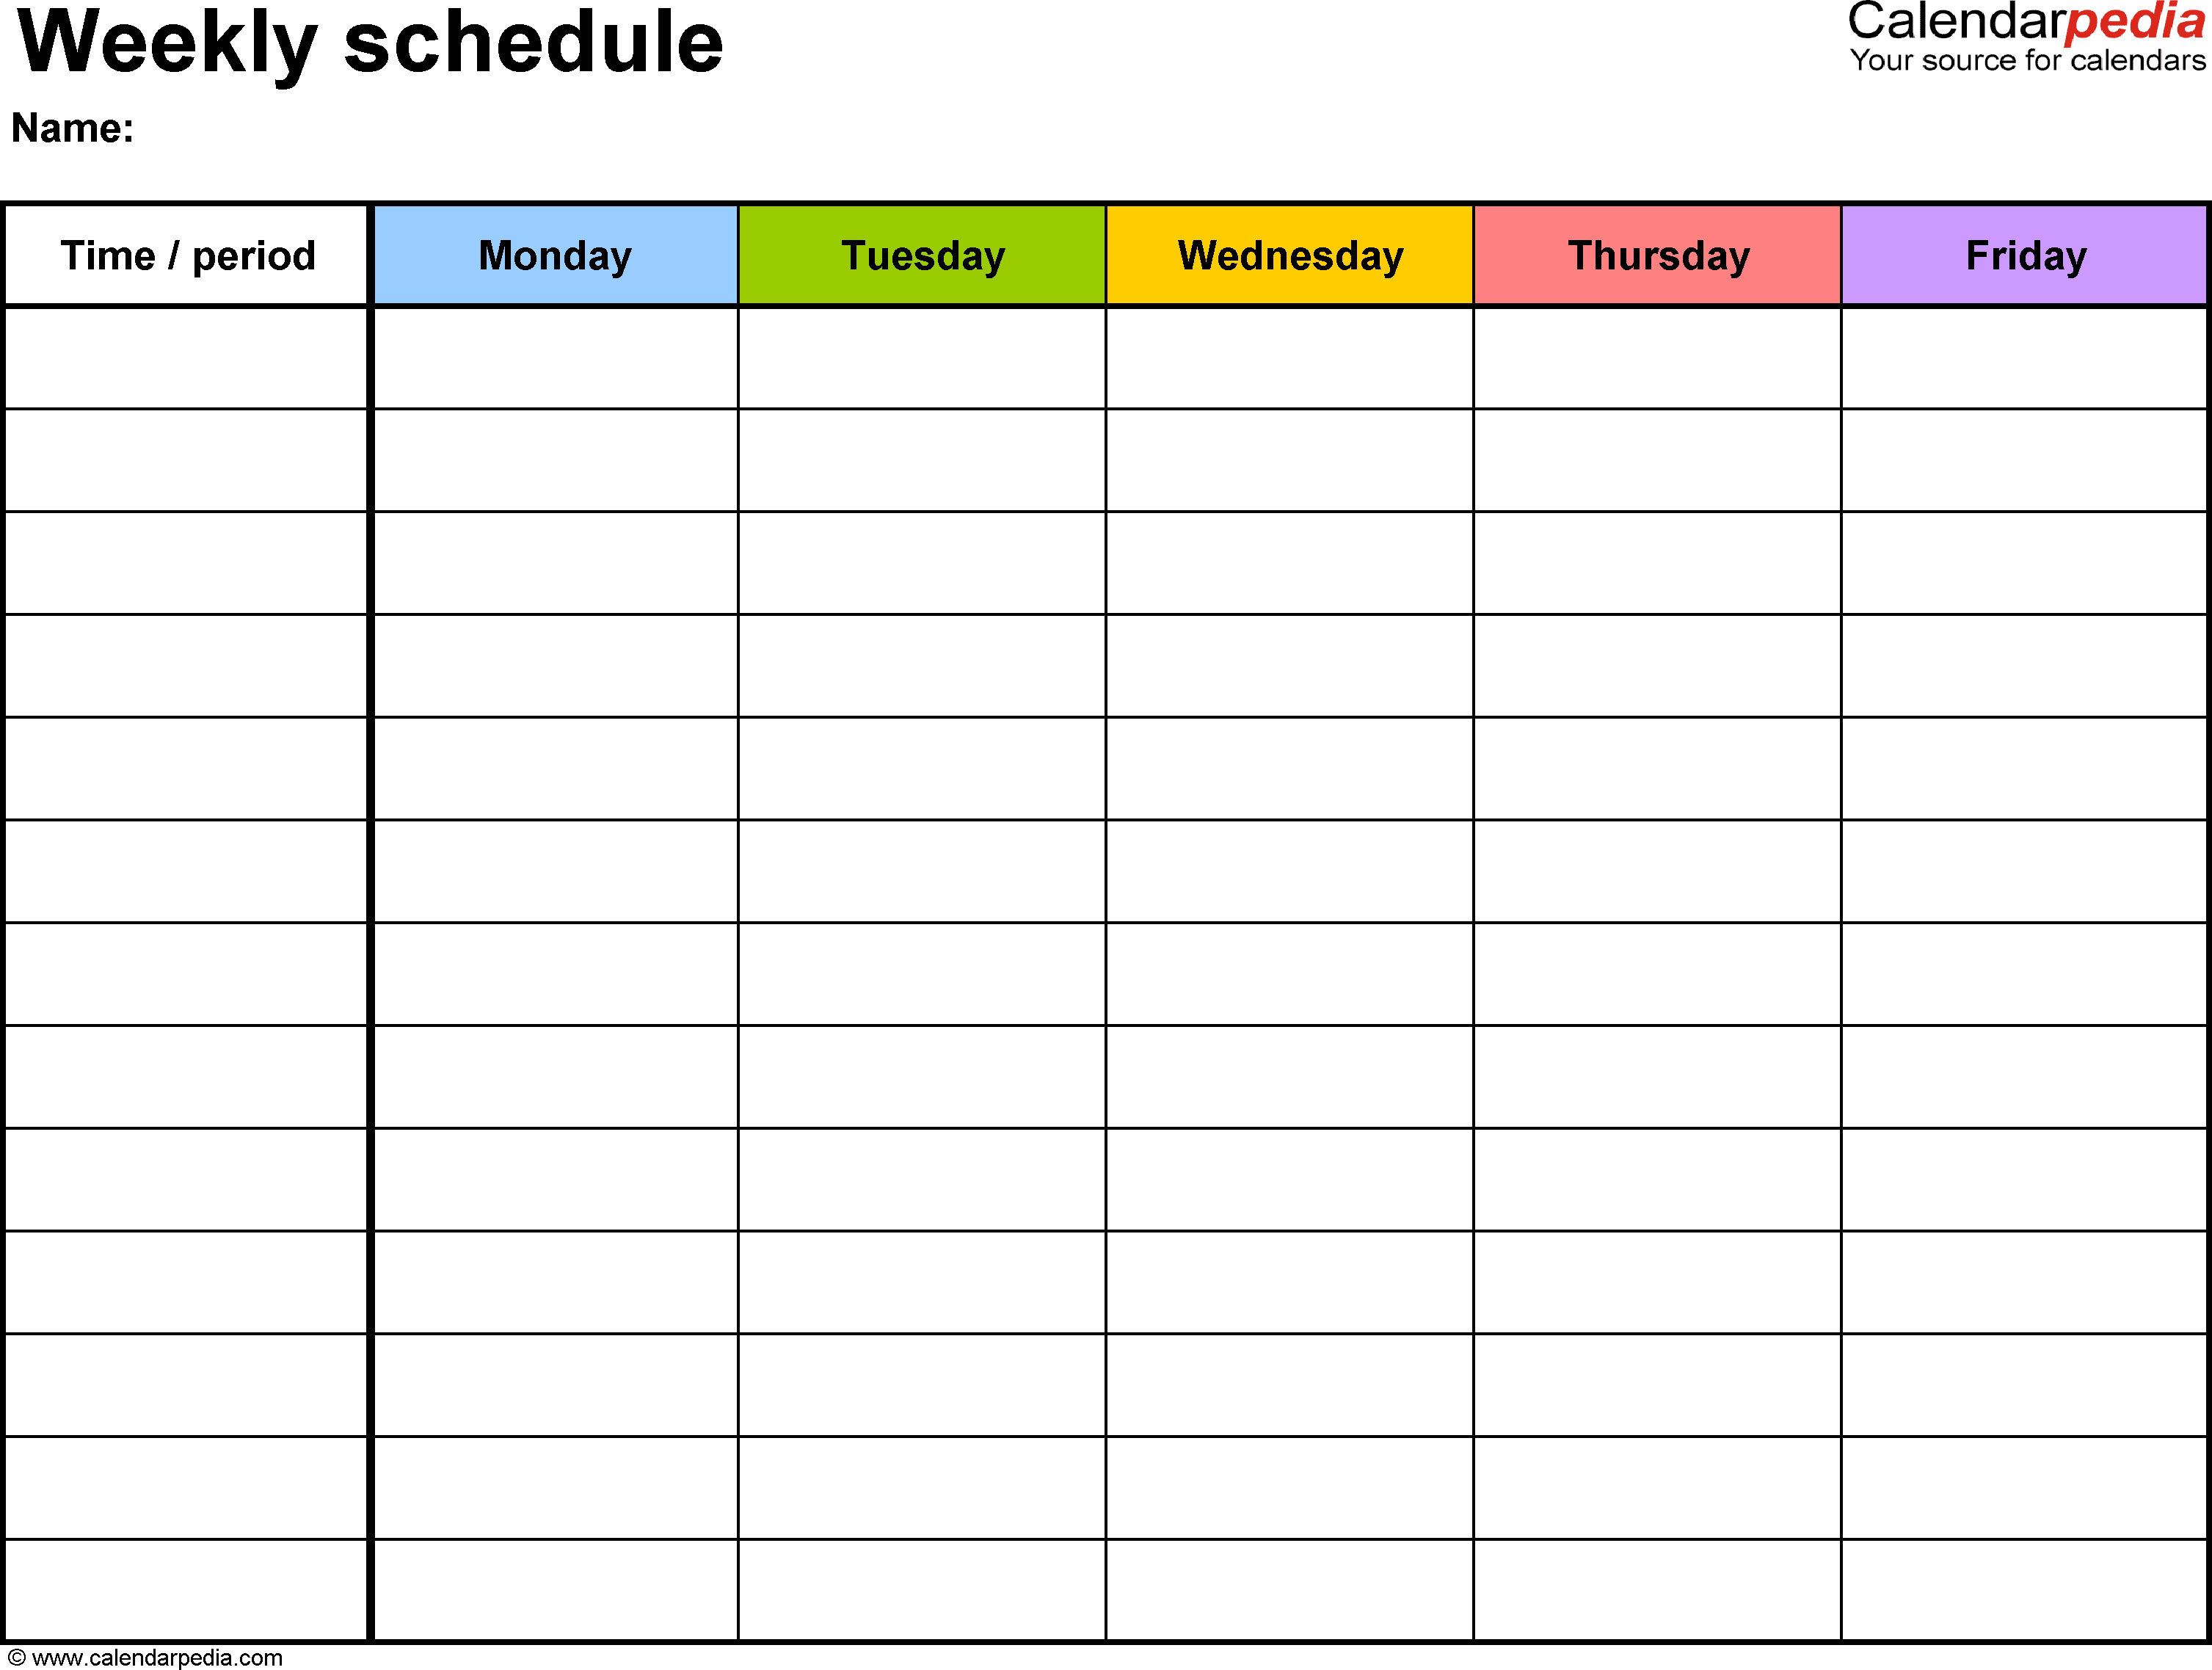 Weekly Downloadable Calendar  Bolan.horizonconsulting.co in Daily Calendar With Time Slots Printable